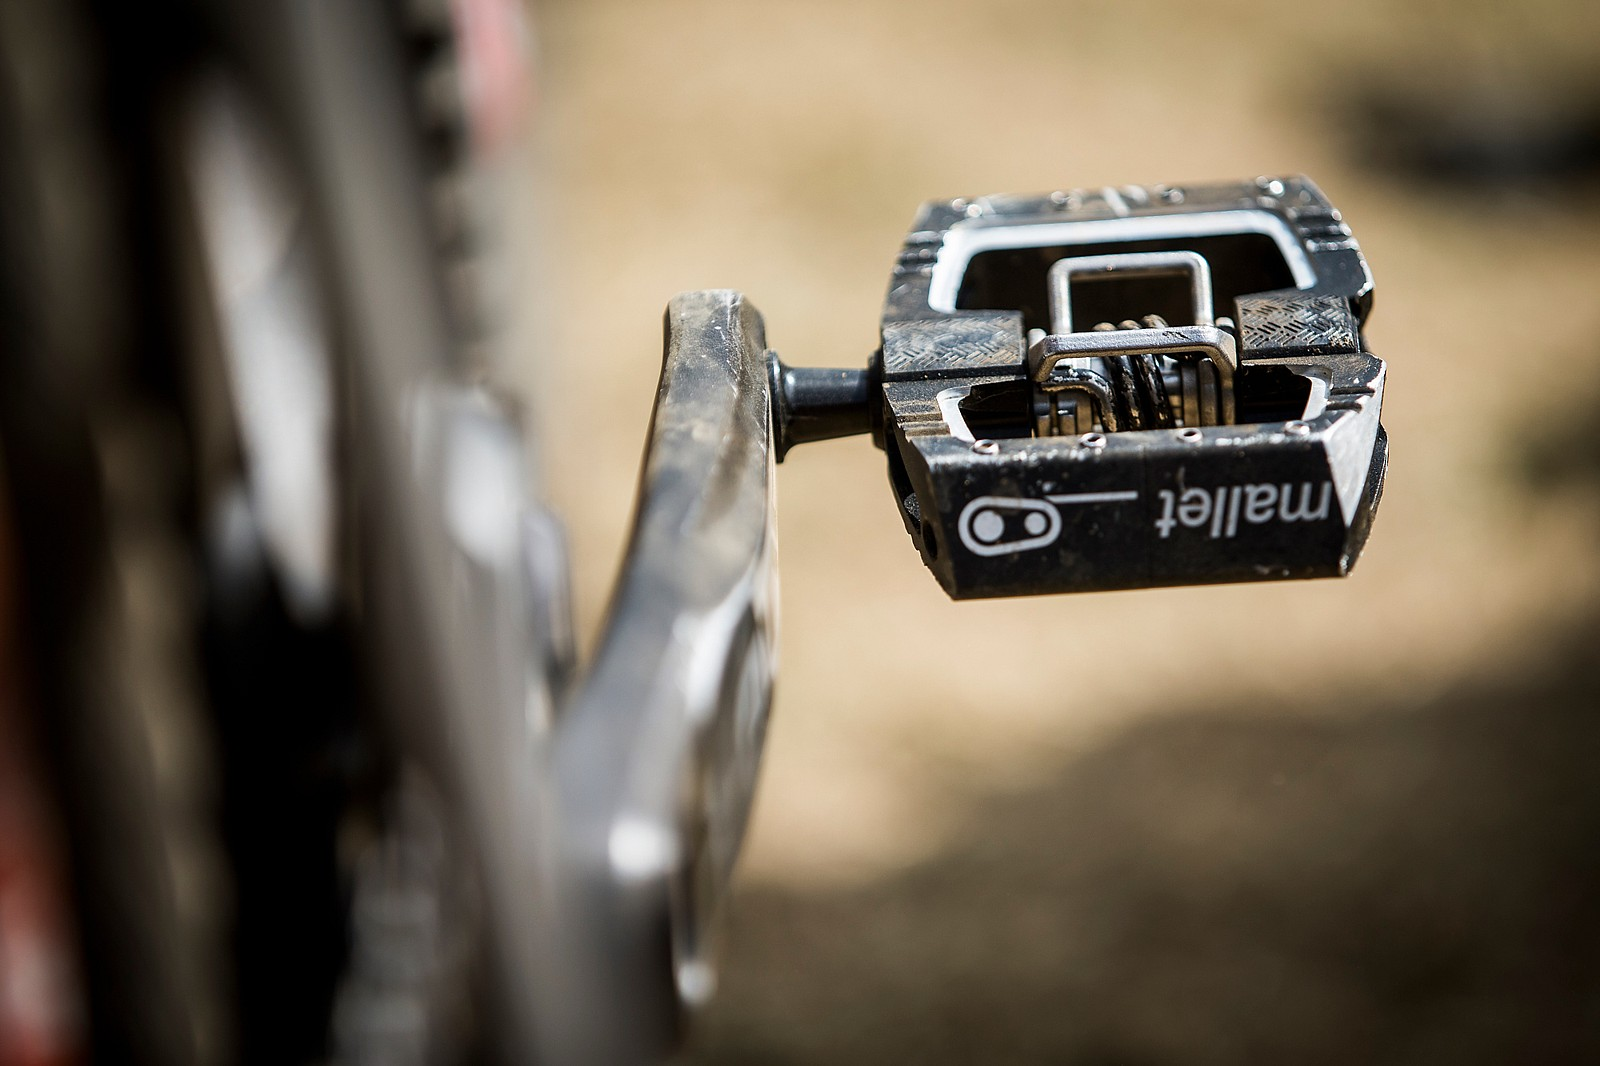 Crank Brothers Mallet Dh - WINNING BIKE: Tahnee Seagrave's Transition TR11 - Mountain Biking Pictures - Vital MTB